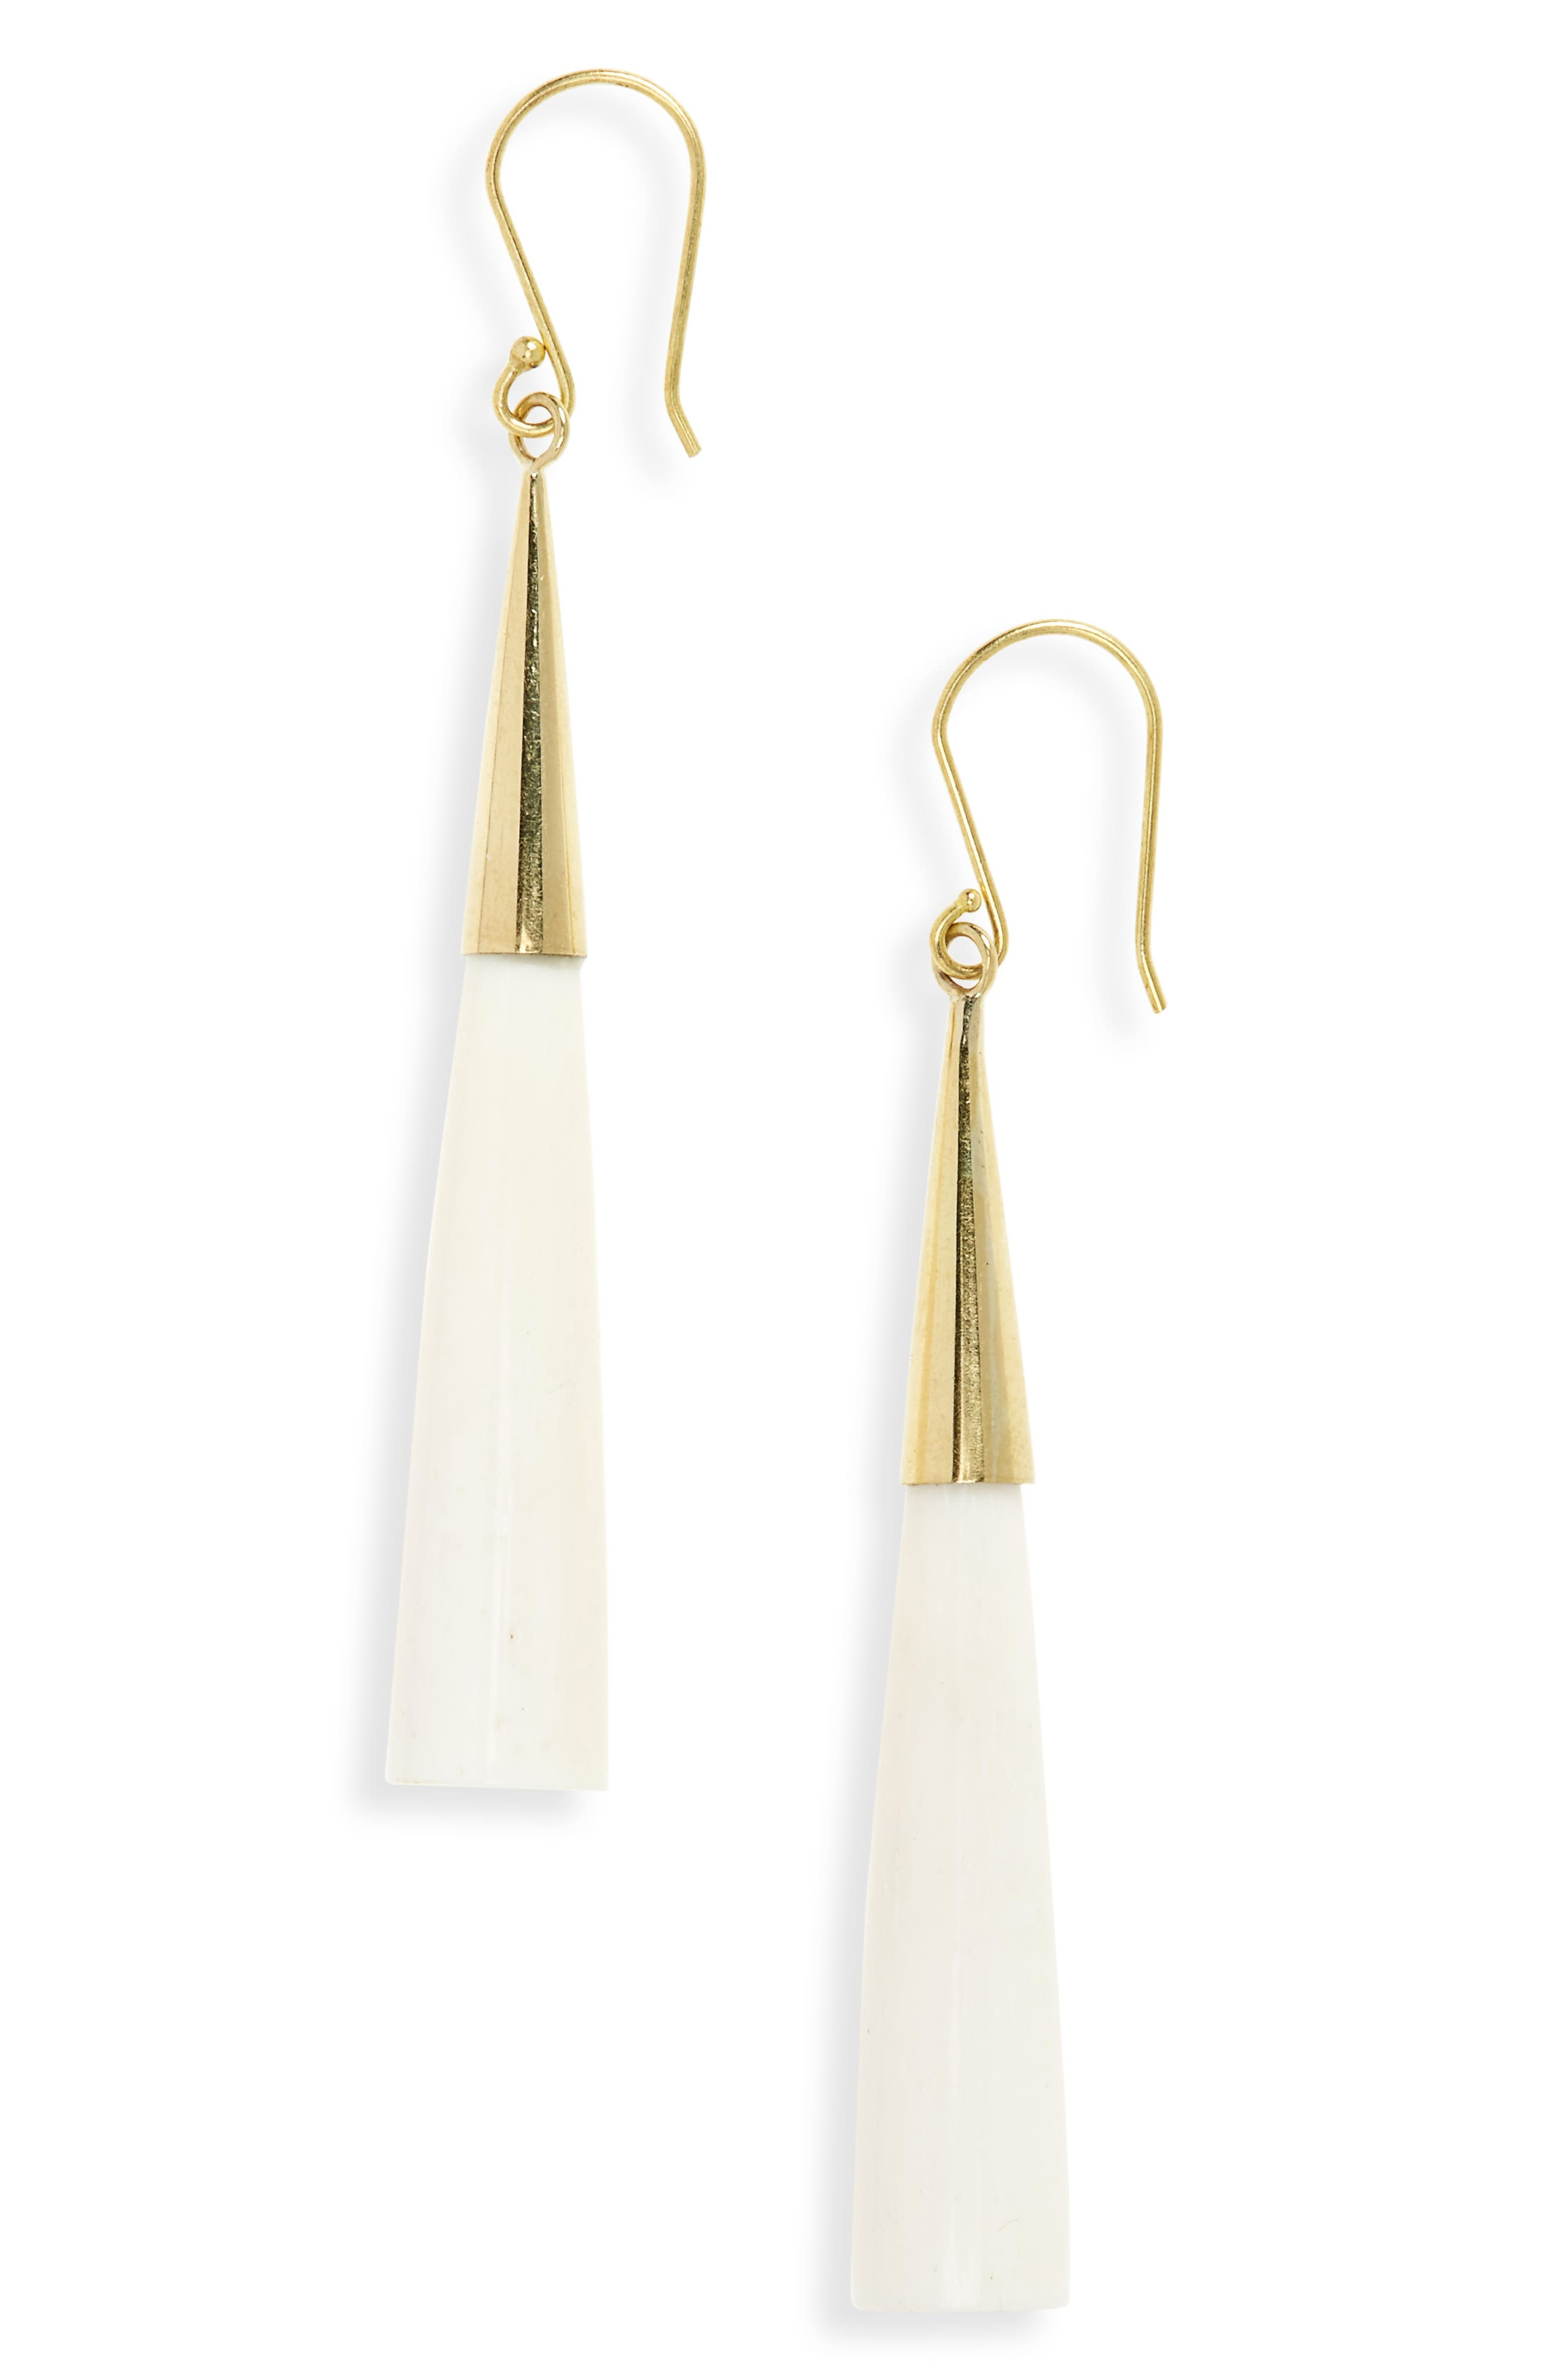 Pia Linear Earrings,                             Main thumbnail 1, color,                             BRASS AND WHITE